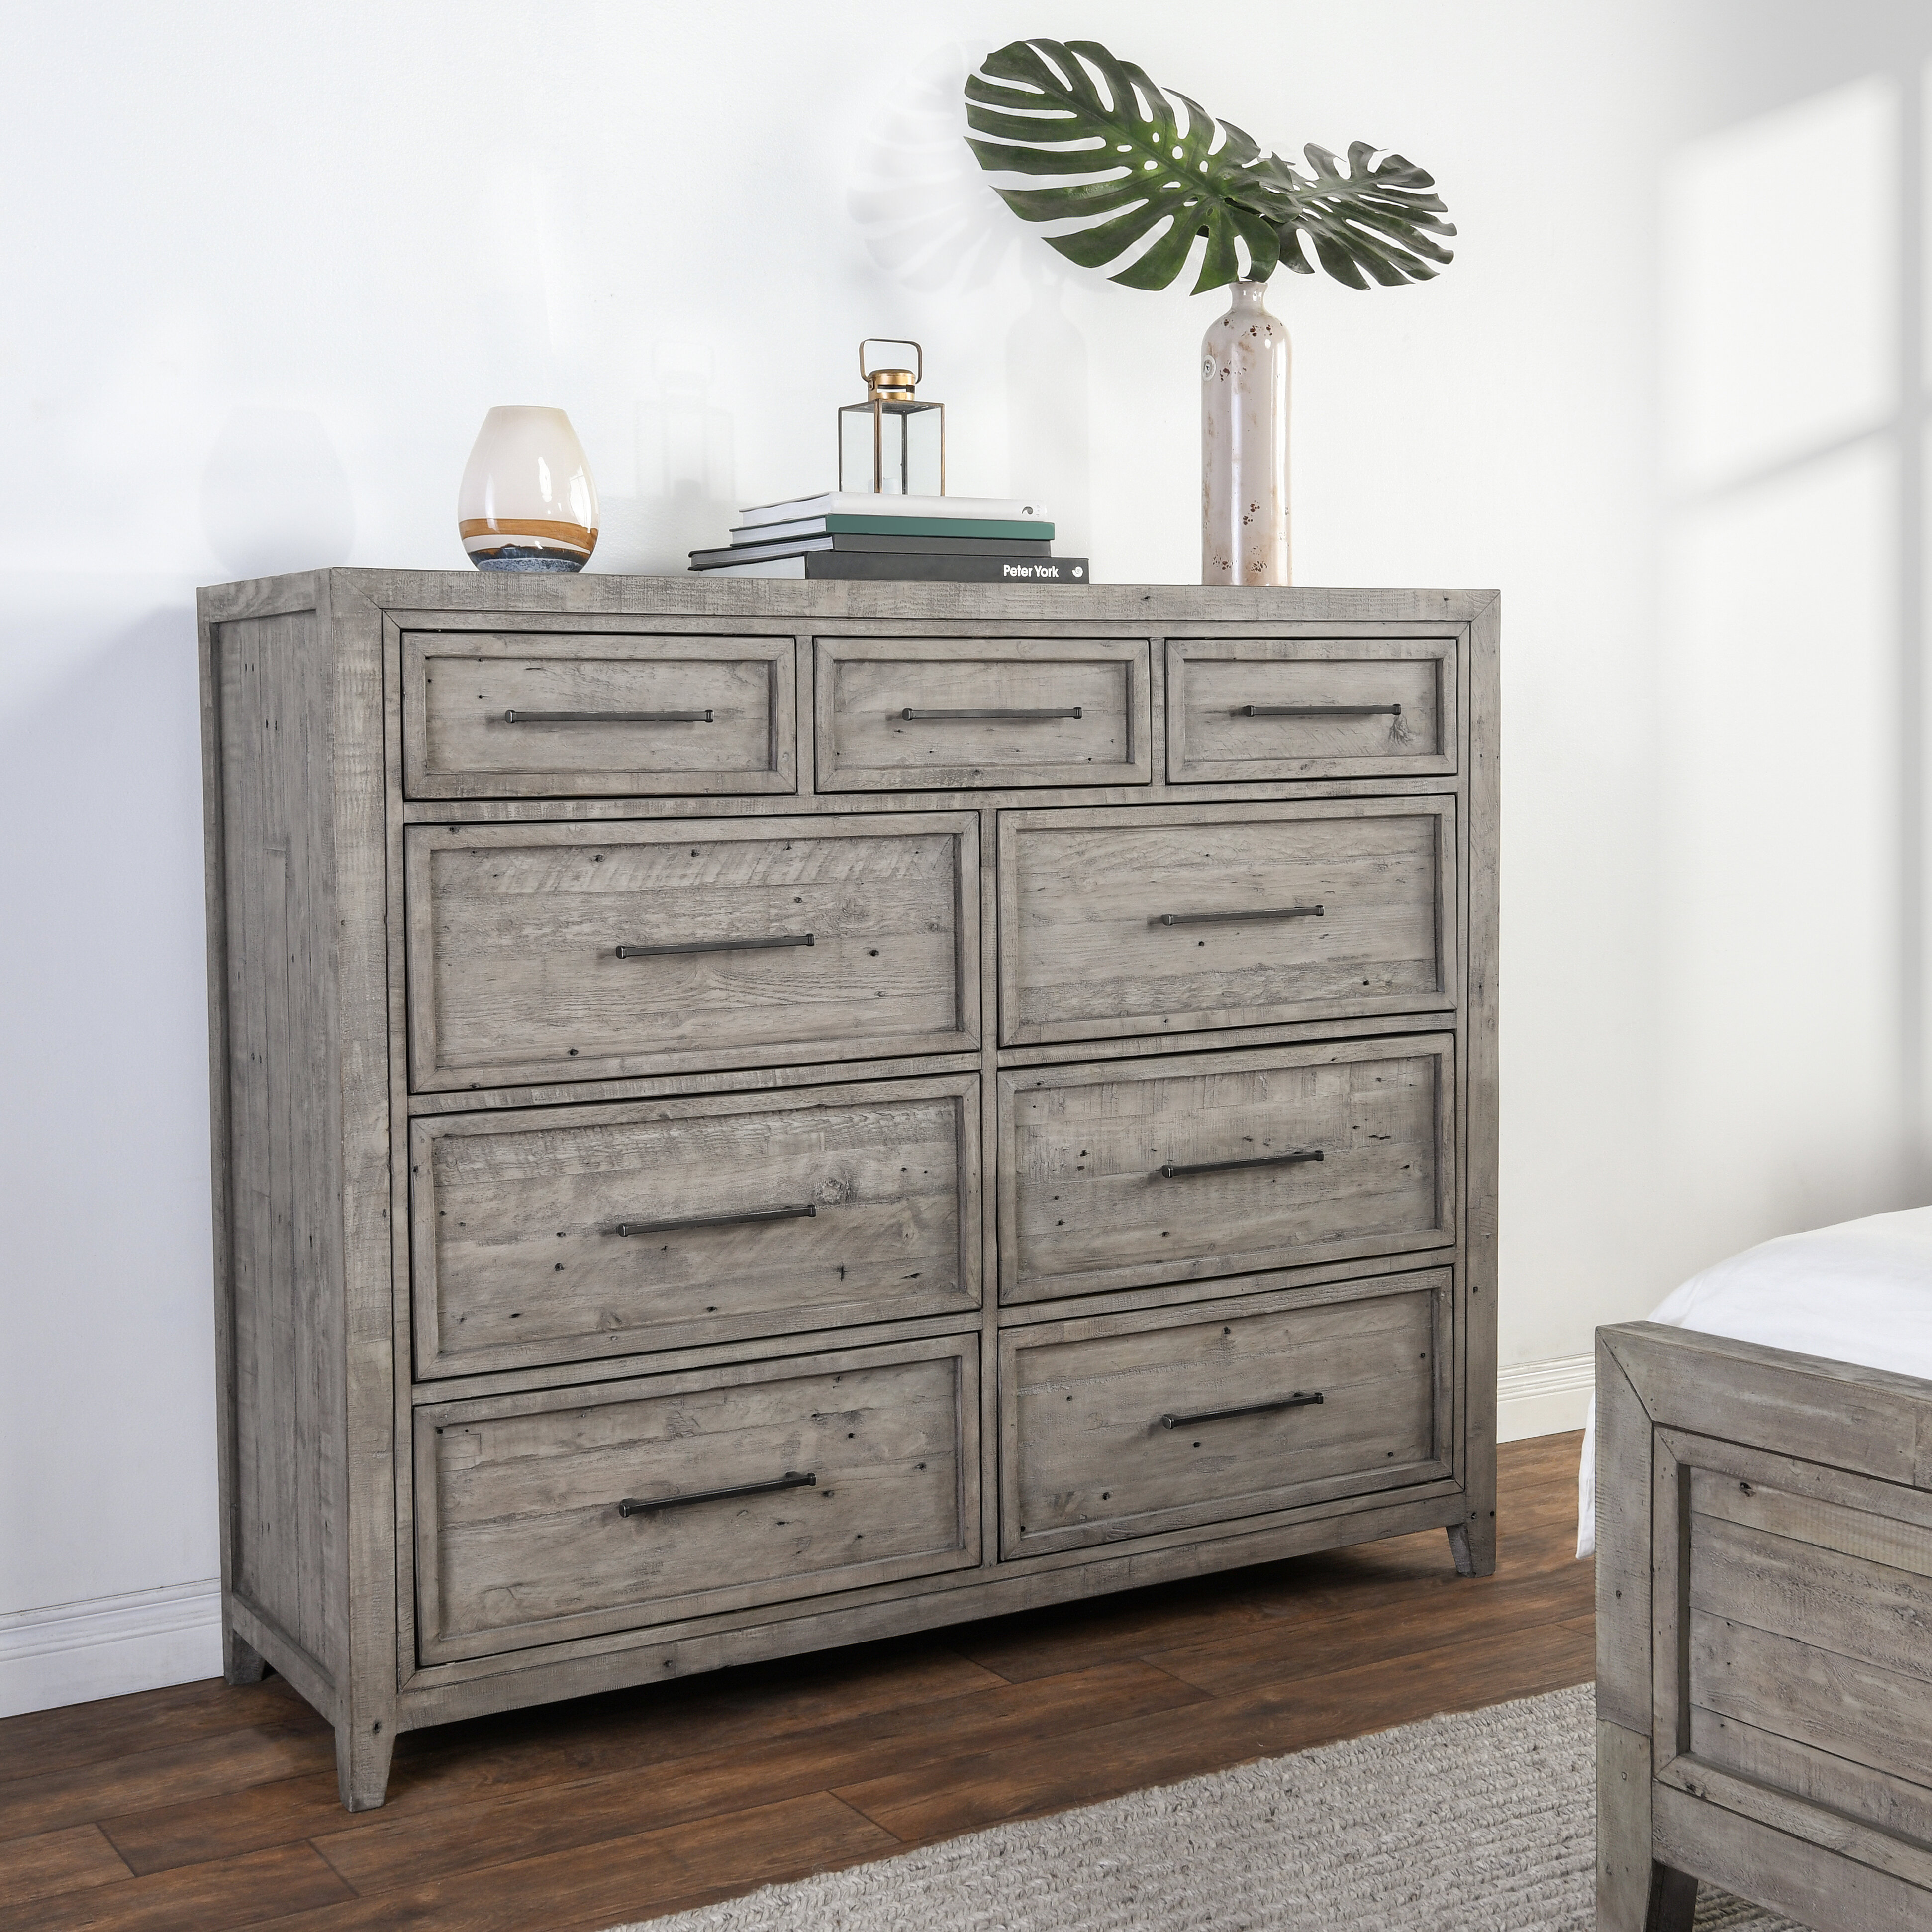 Millwood Pines Kimberley Reclaimed Pine 9 Drawer Double Dresser